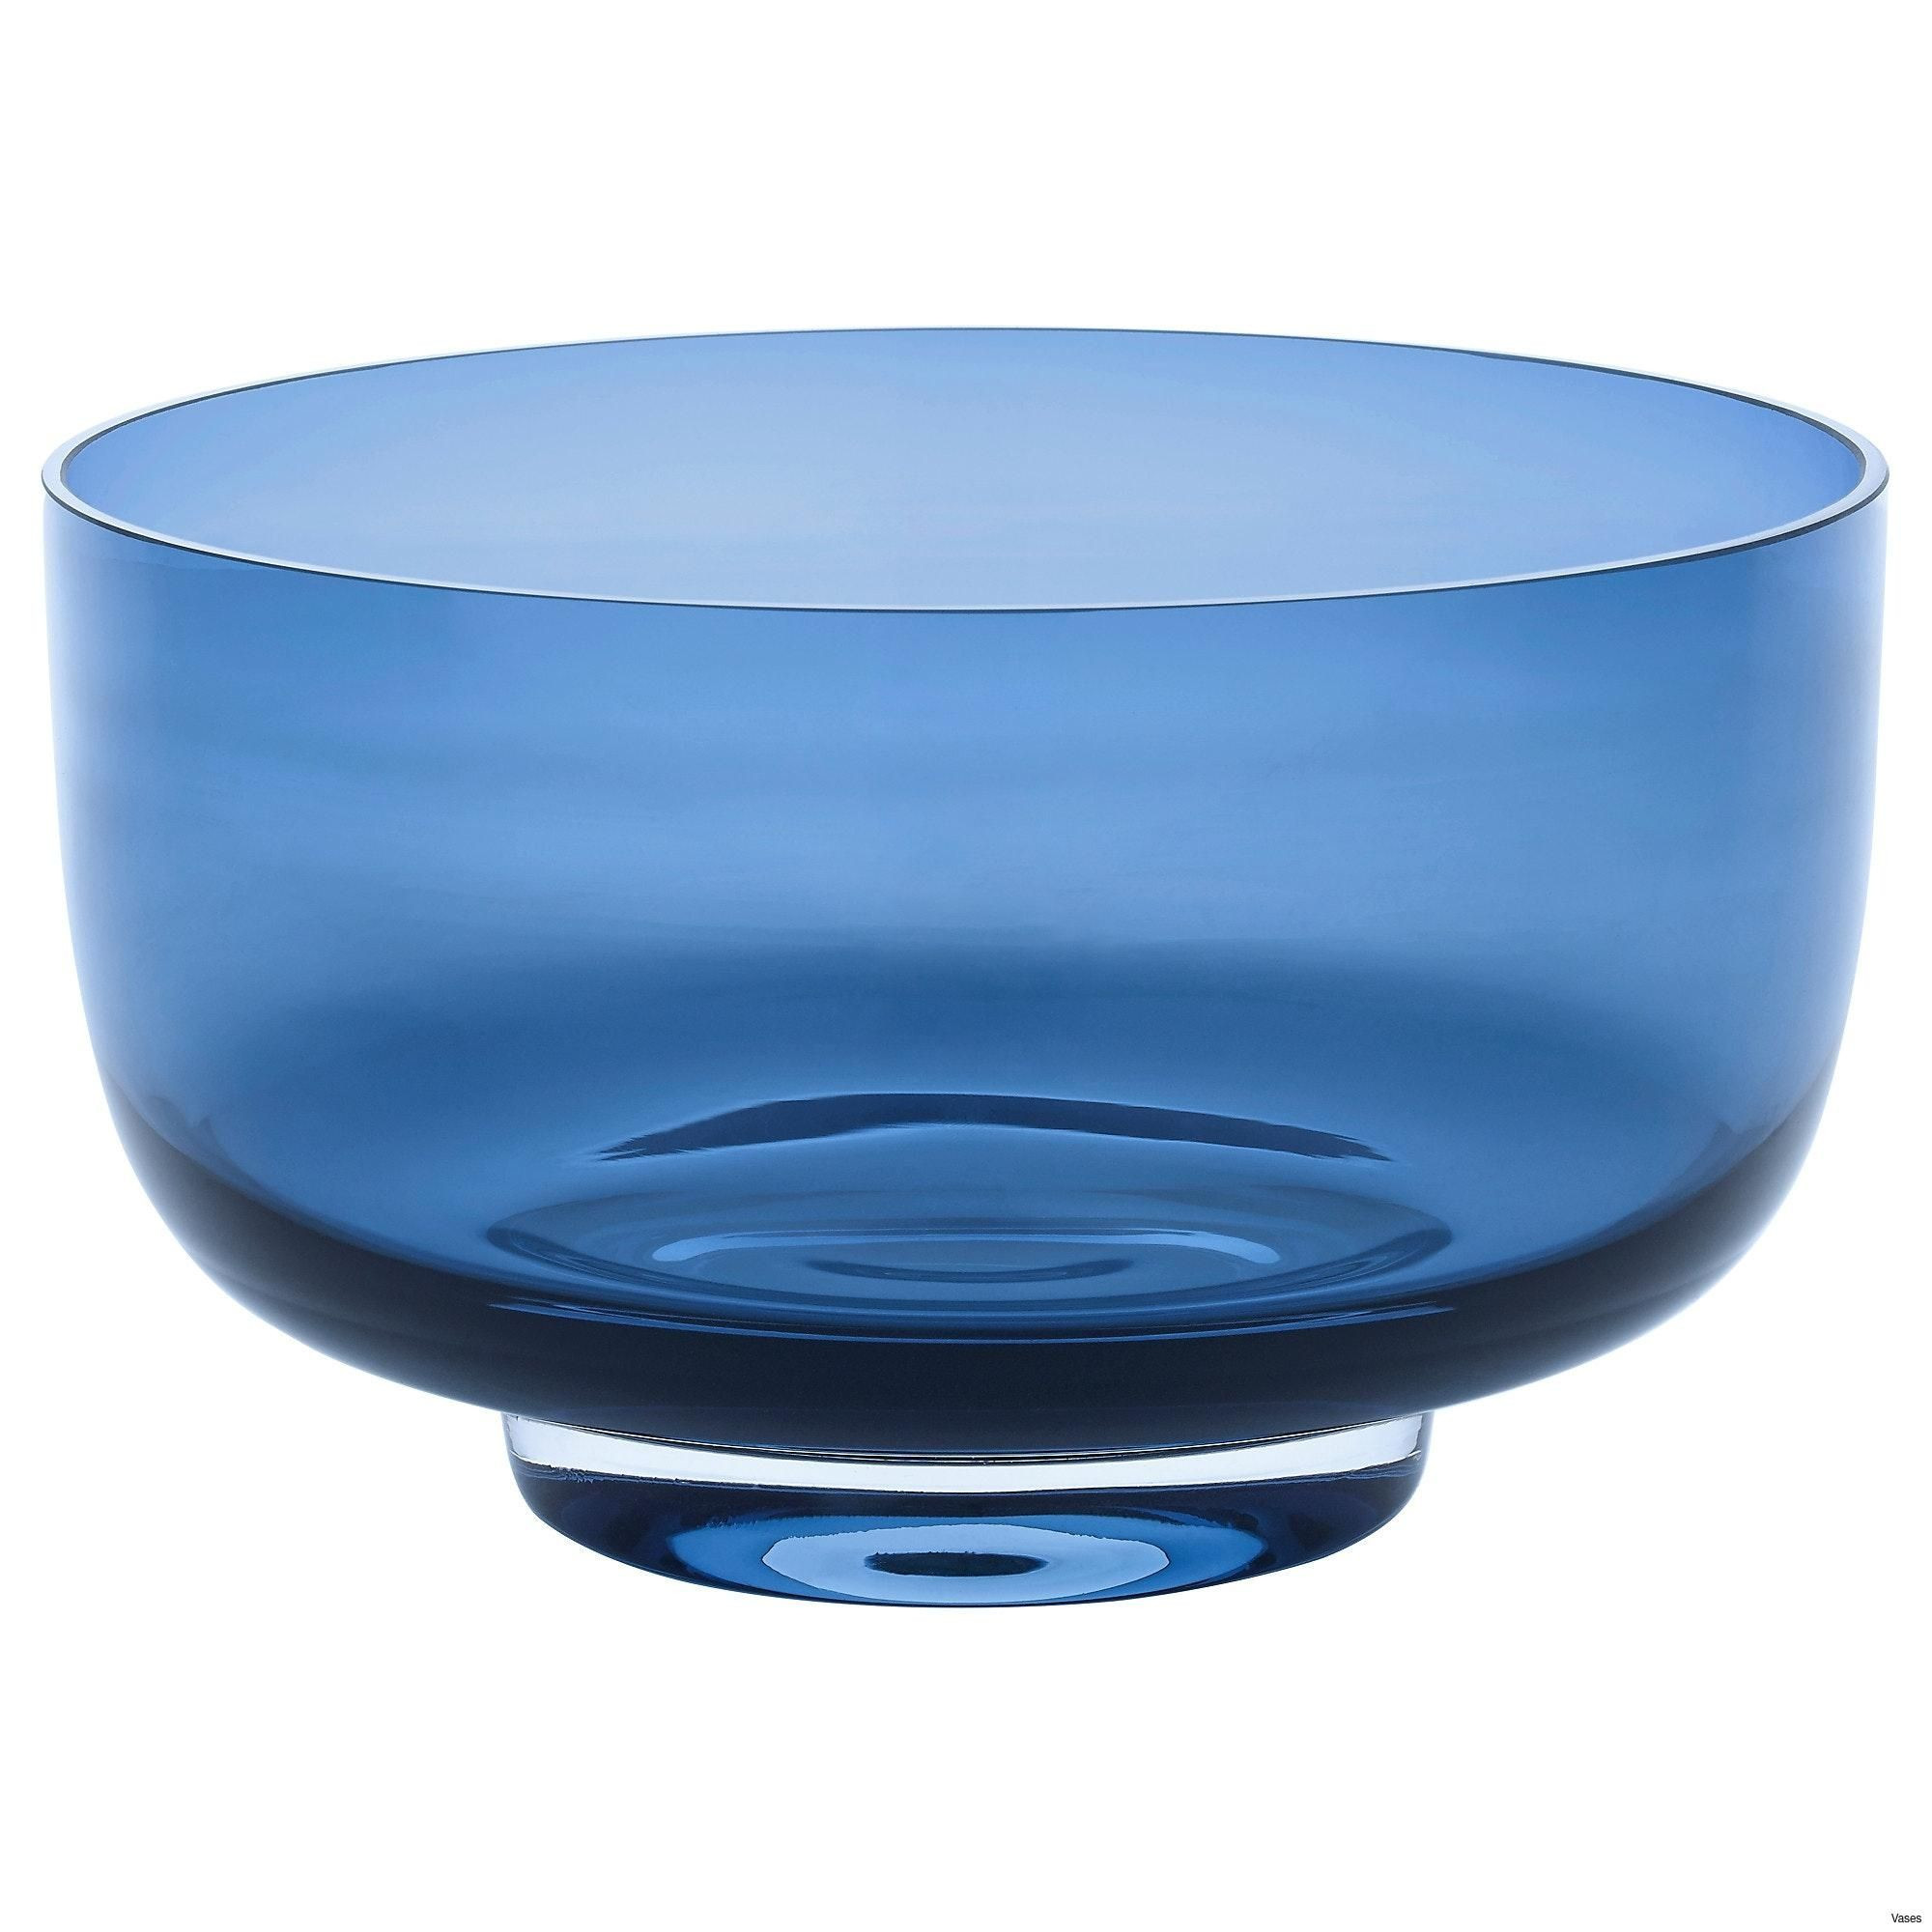 nachtmann crystal vase of 23 blue crystal vase the weekly world throughout decorative glass bowl new living room ikea vases awesome pe s5h